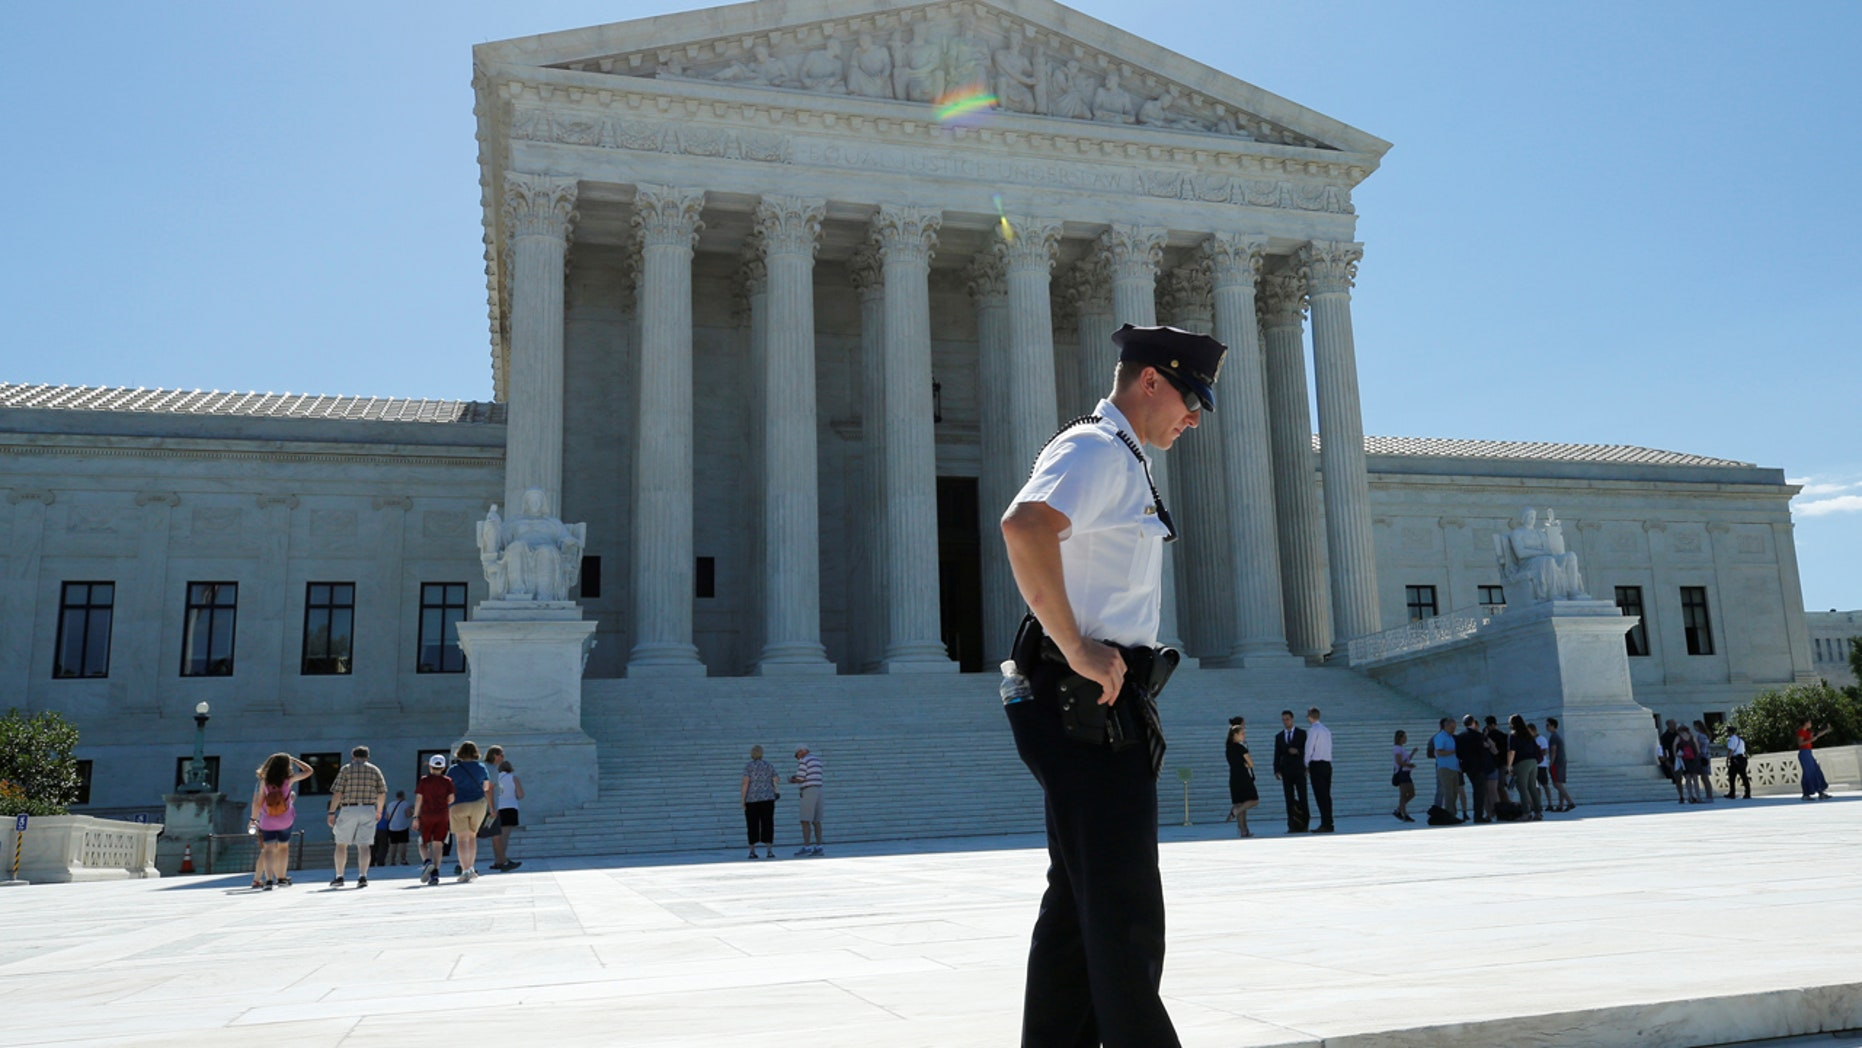 The Supreme Court on Tuesday allowed the administration to maintain its policy on refugees.